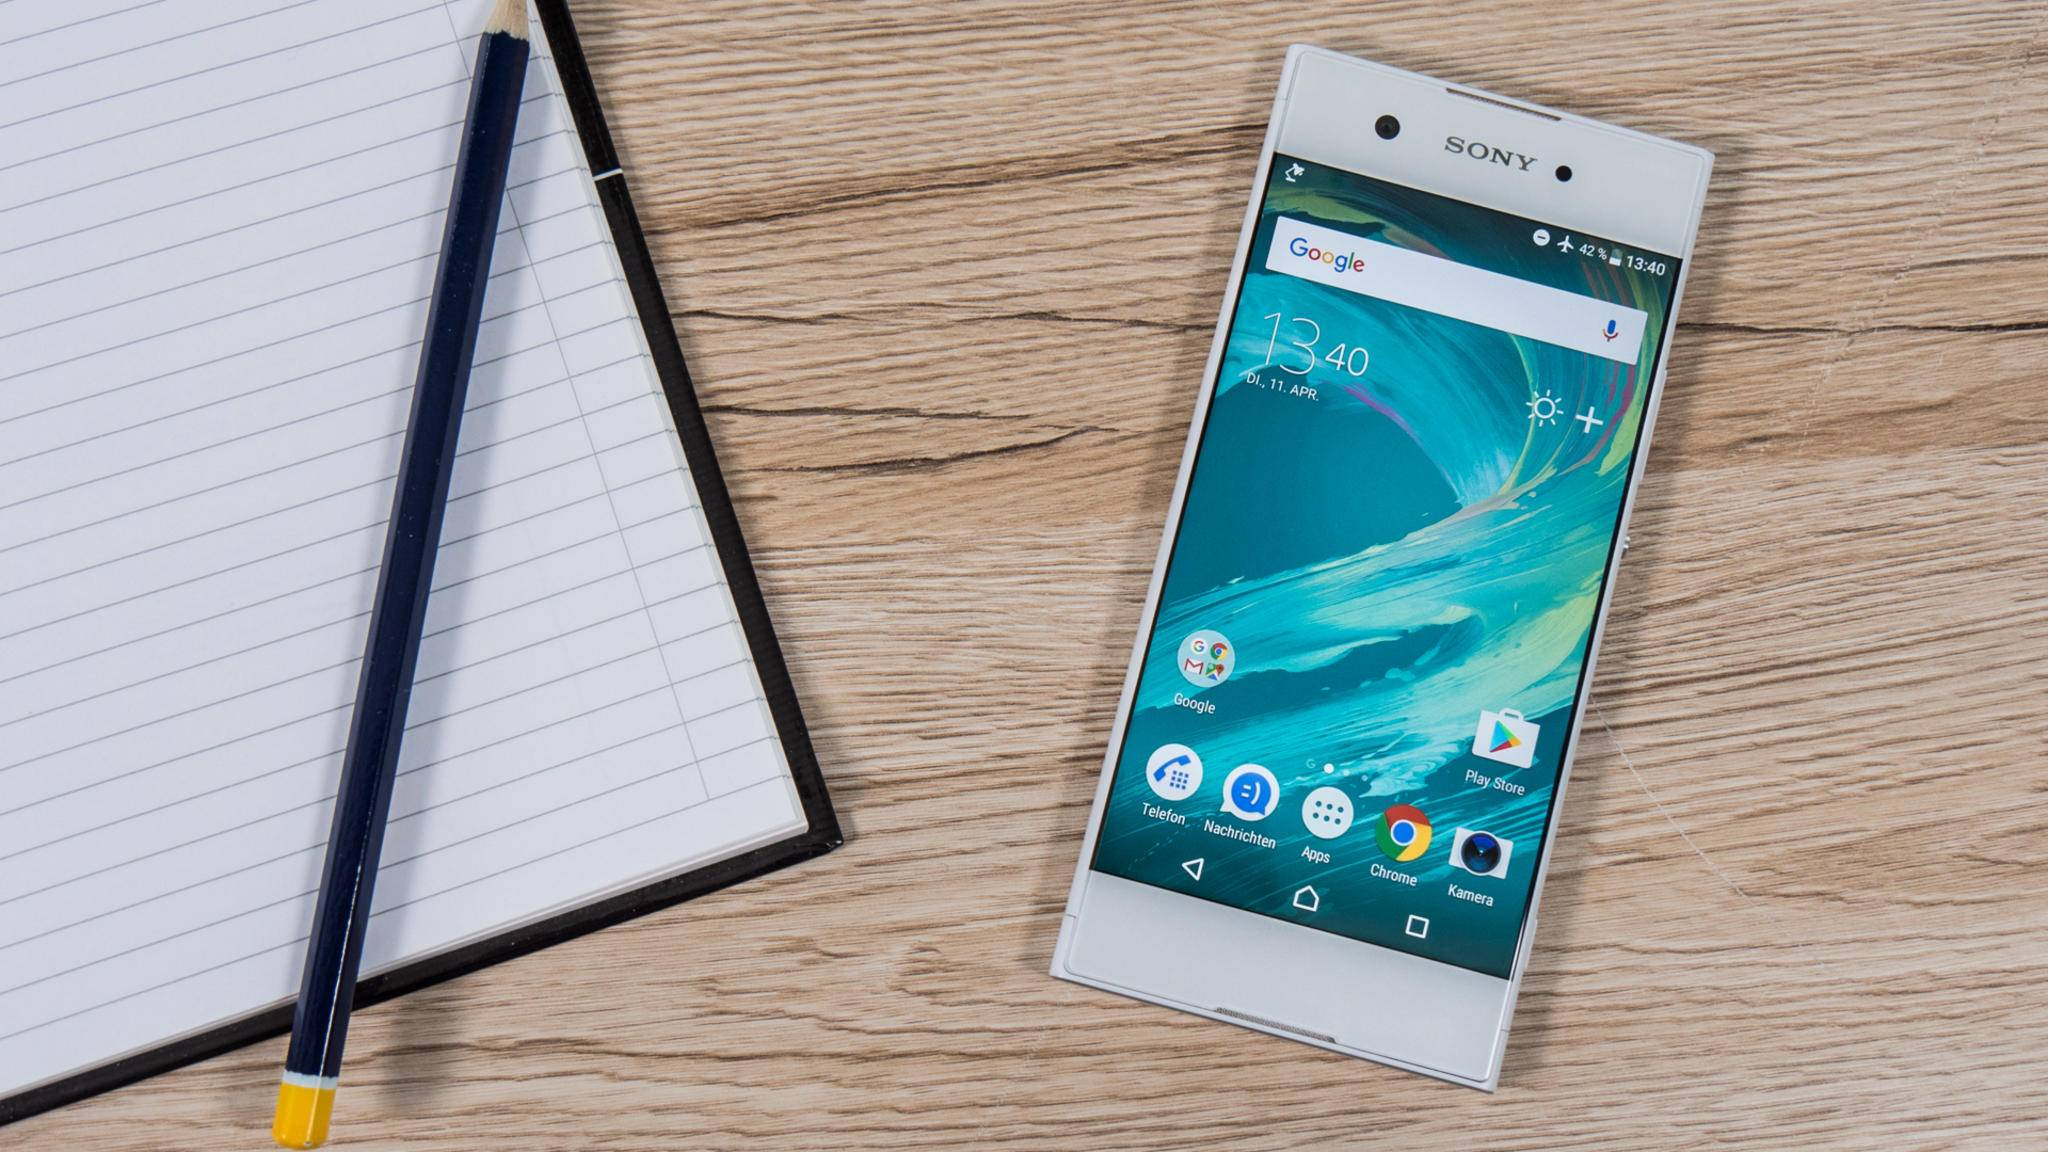 Bekommt dank Android 8.0 Oreo neue Features: Das Sony Xperia XA1.